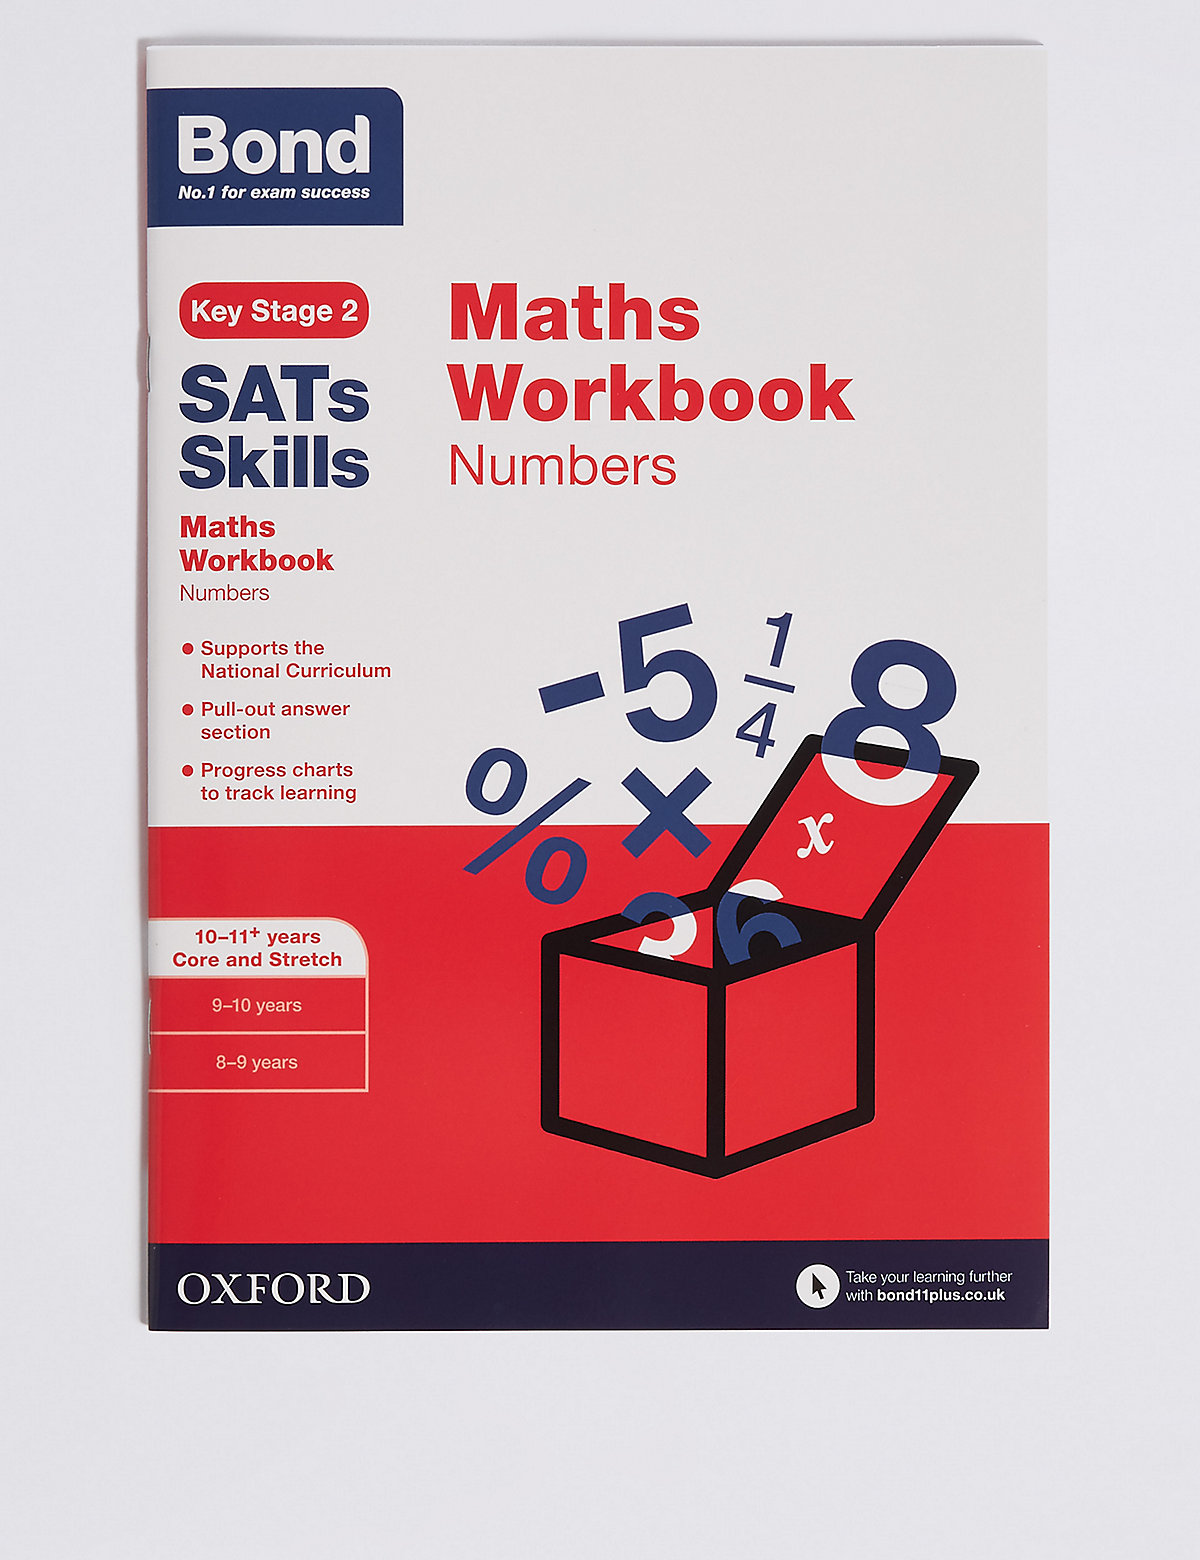 Workbooks key stage 2 workbooks : Bond SATs Skills Maths | Bluewater | £10.00